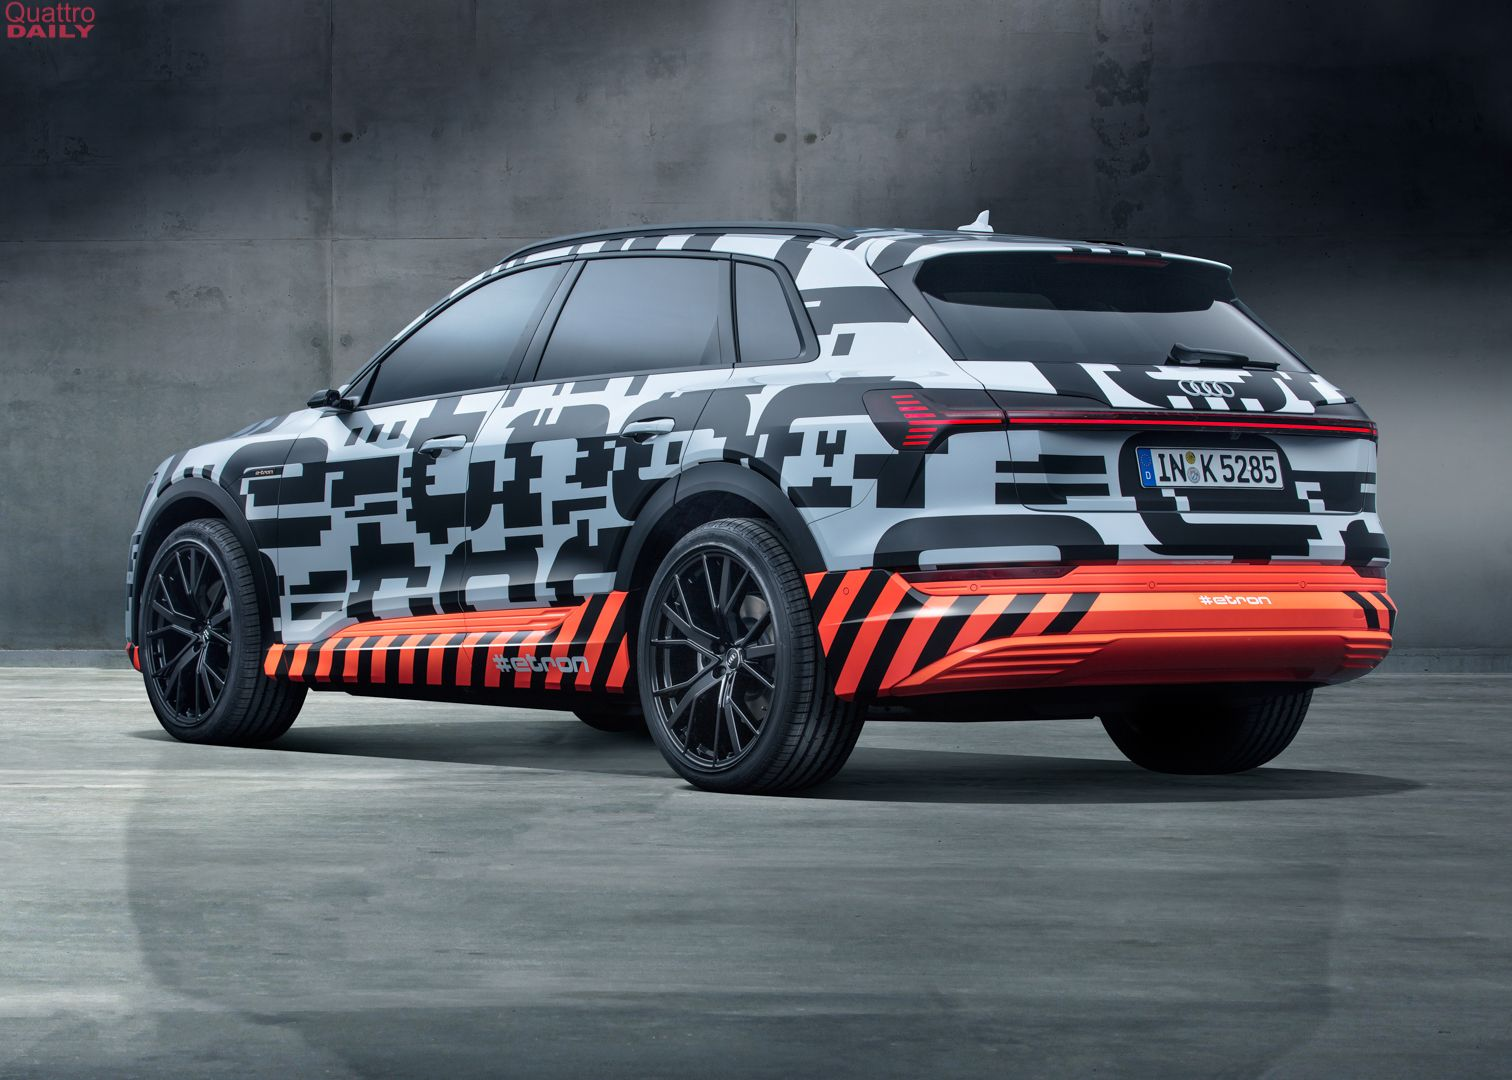 Audi Will Build e-tron Electric Car at 'Carbon Neutral' Factory